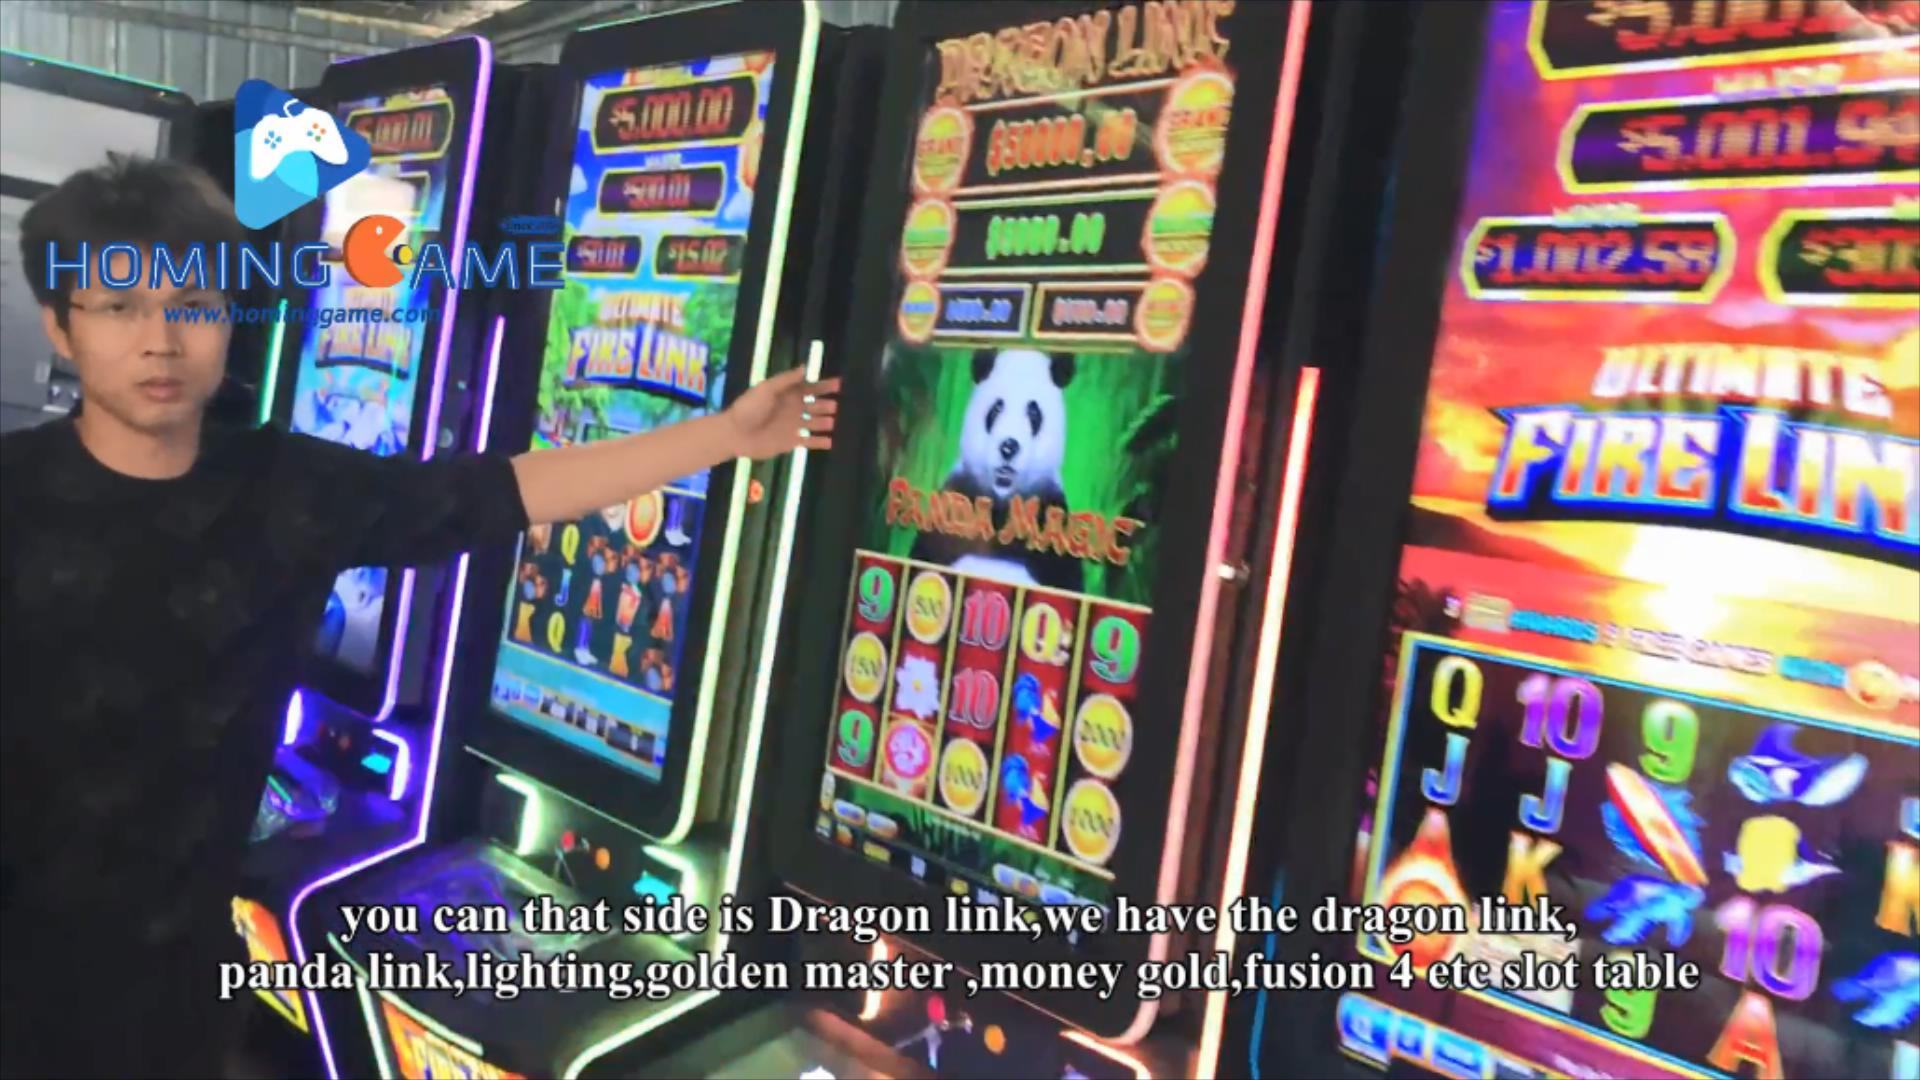 2021 USA Best Slot Table Game Machine Manufactuer By HomingGame Producing All kind of Slot Table,Fire link,Dragon link,Fusion 4,golden master,money gold,lighting ,panda link slot table game machine (Order Call Whatsapp:+8618688409495),43' touch curve monitor 8 in 1 fire link slot table game machine,8 in 1 fire link slot game machine,slot table game machine,43' touch screen fire link slot game machine,43' touch monitor fire link slot table game machine,43' curve touch monitor fire link slot gaming machine,dragon link slot game machine,panda link slot game machine,golden buffalo slot game machine,fusion 4 slot game machine,ultimate fire link,ultimate fire link slot game machine,ultimate fire link slot game,fire link slot game machine,fire link,ultimate fire link slot gaming machine,ultimate fire link slot table gaming machine,slot game,slot table game,slot gaming machine,game machine,arcade game machine,coin operated game machine,arcade game machine for sale,amsuement machine,entertainment game machine,family entertainment game machine,hominggame,www.gametube.hk,indoor game machine,casino,gambling machine,electrical game machine,slot,slot game machine for sale,slot table for sale,simulator game machine,video game machine,video game,video game machine for sale,hominggame fire link slot game,slot gaming